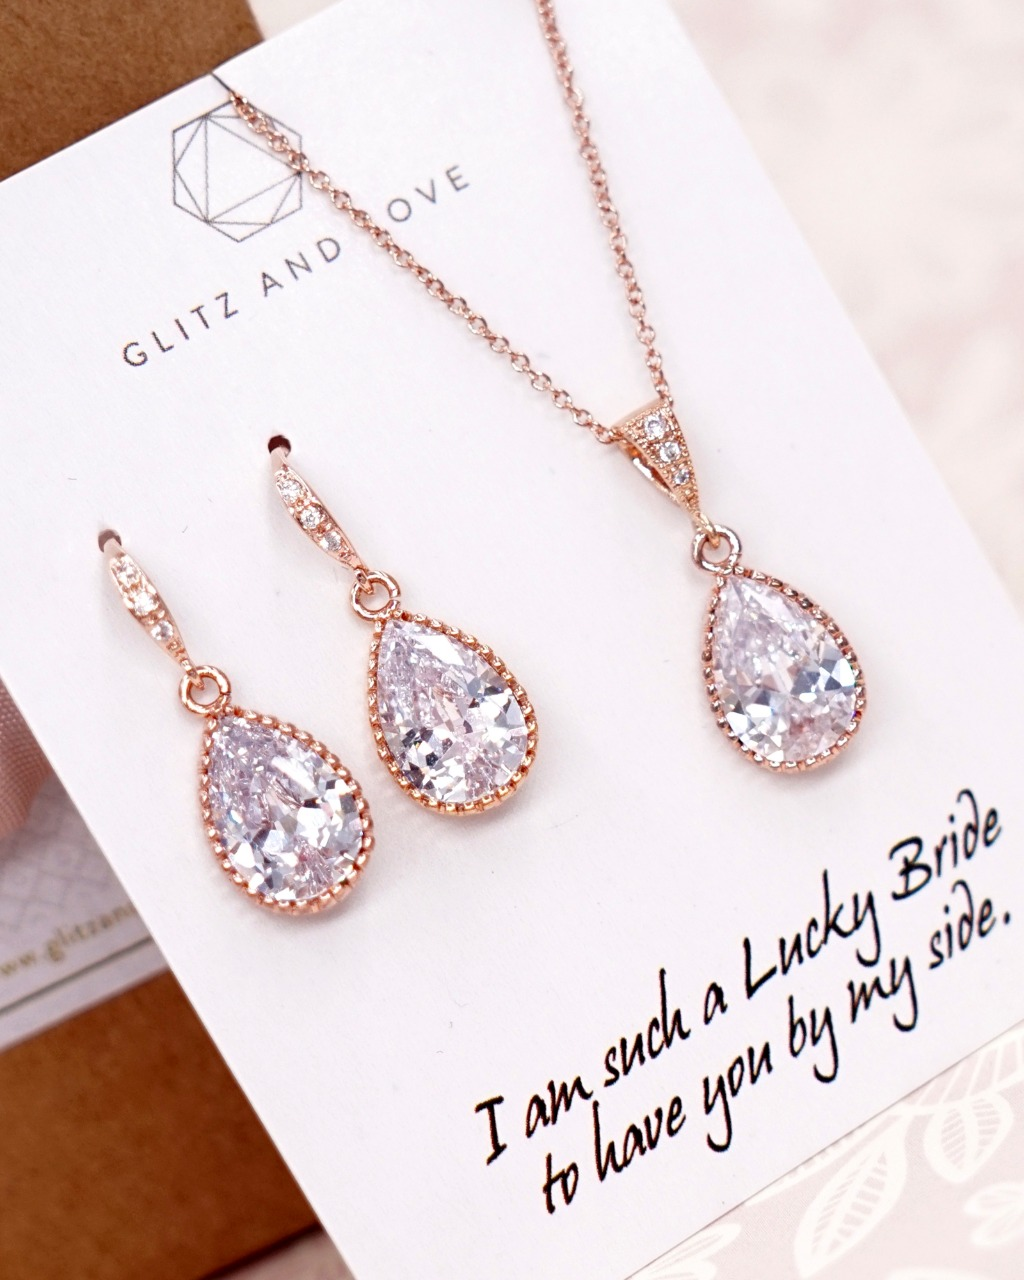 Rose Gold CZ Teardrop Jewelry Set - Welcome to Glitz & Love where you will find a collection of exquisite and intricately handcrafted